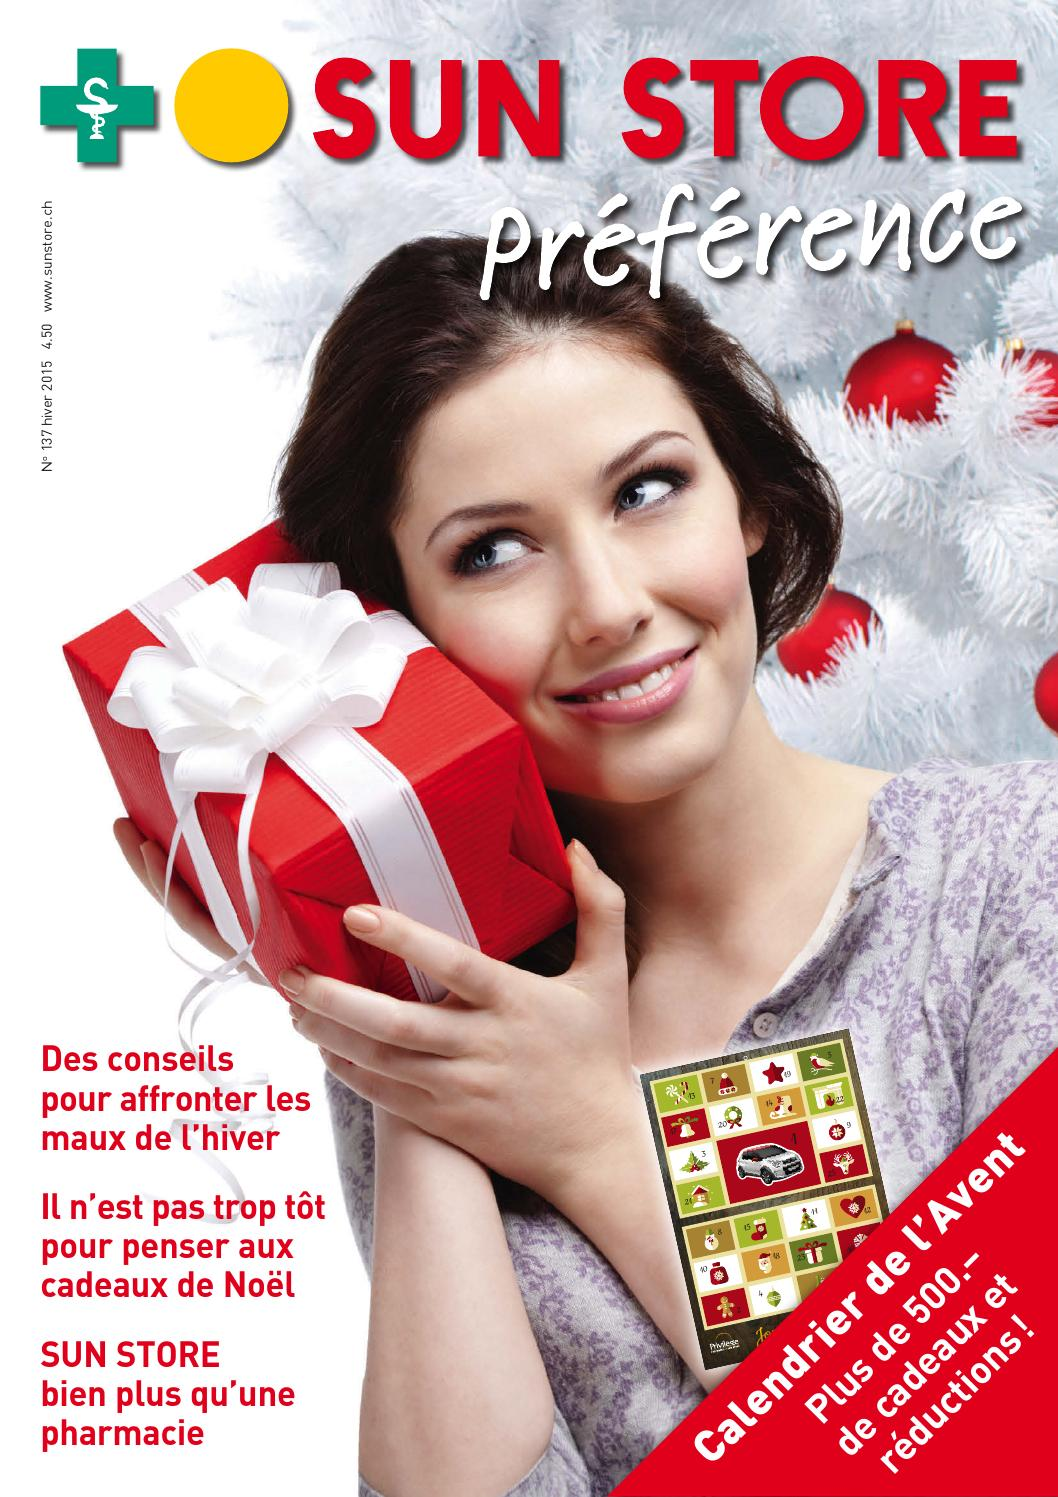 Préférence By Galenicare Management 137 N° Pharmacies Parfumeries P8wO0kXn